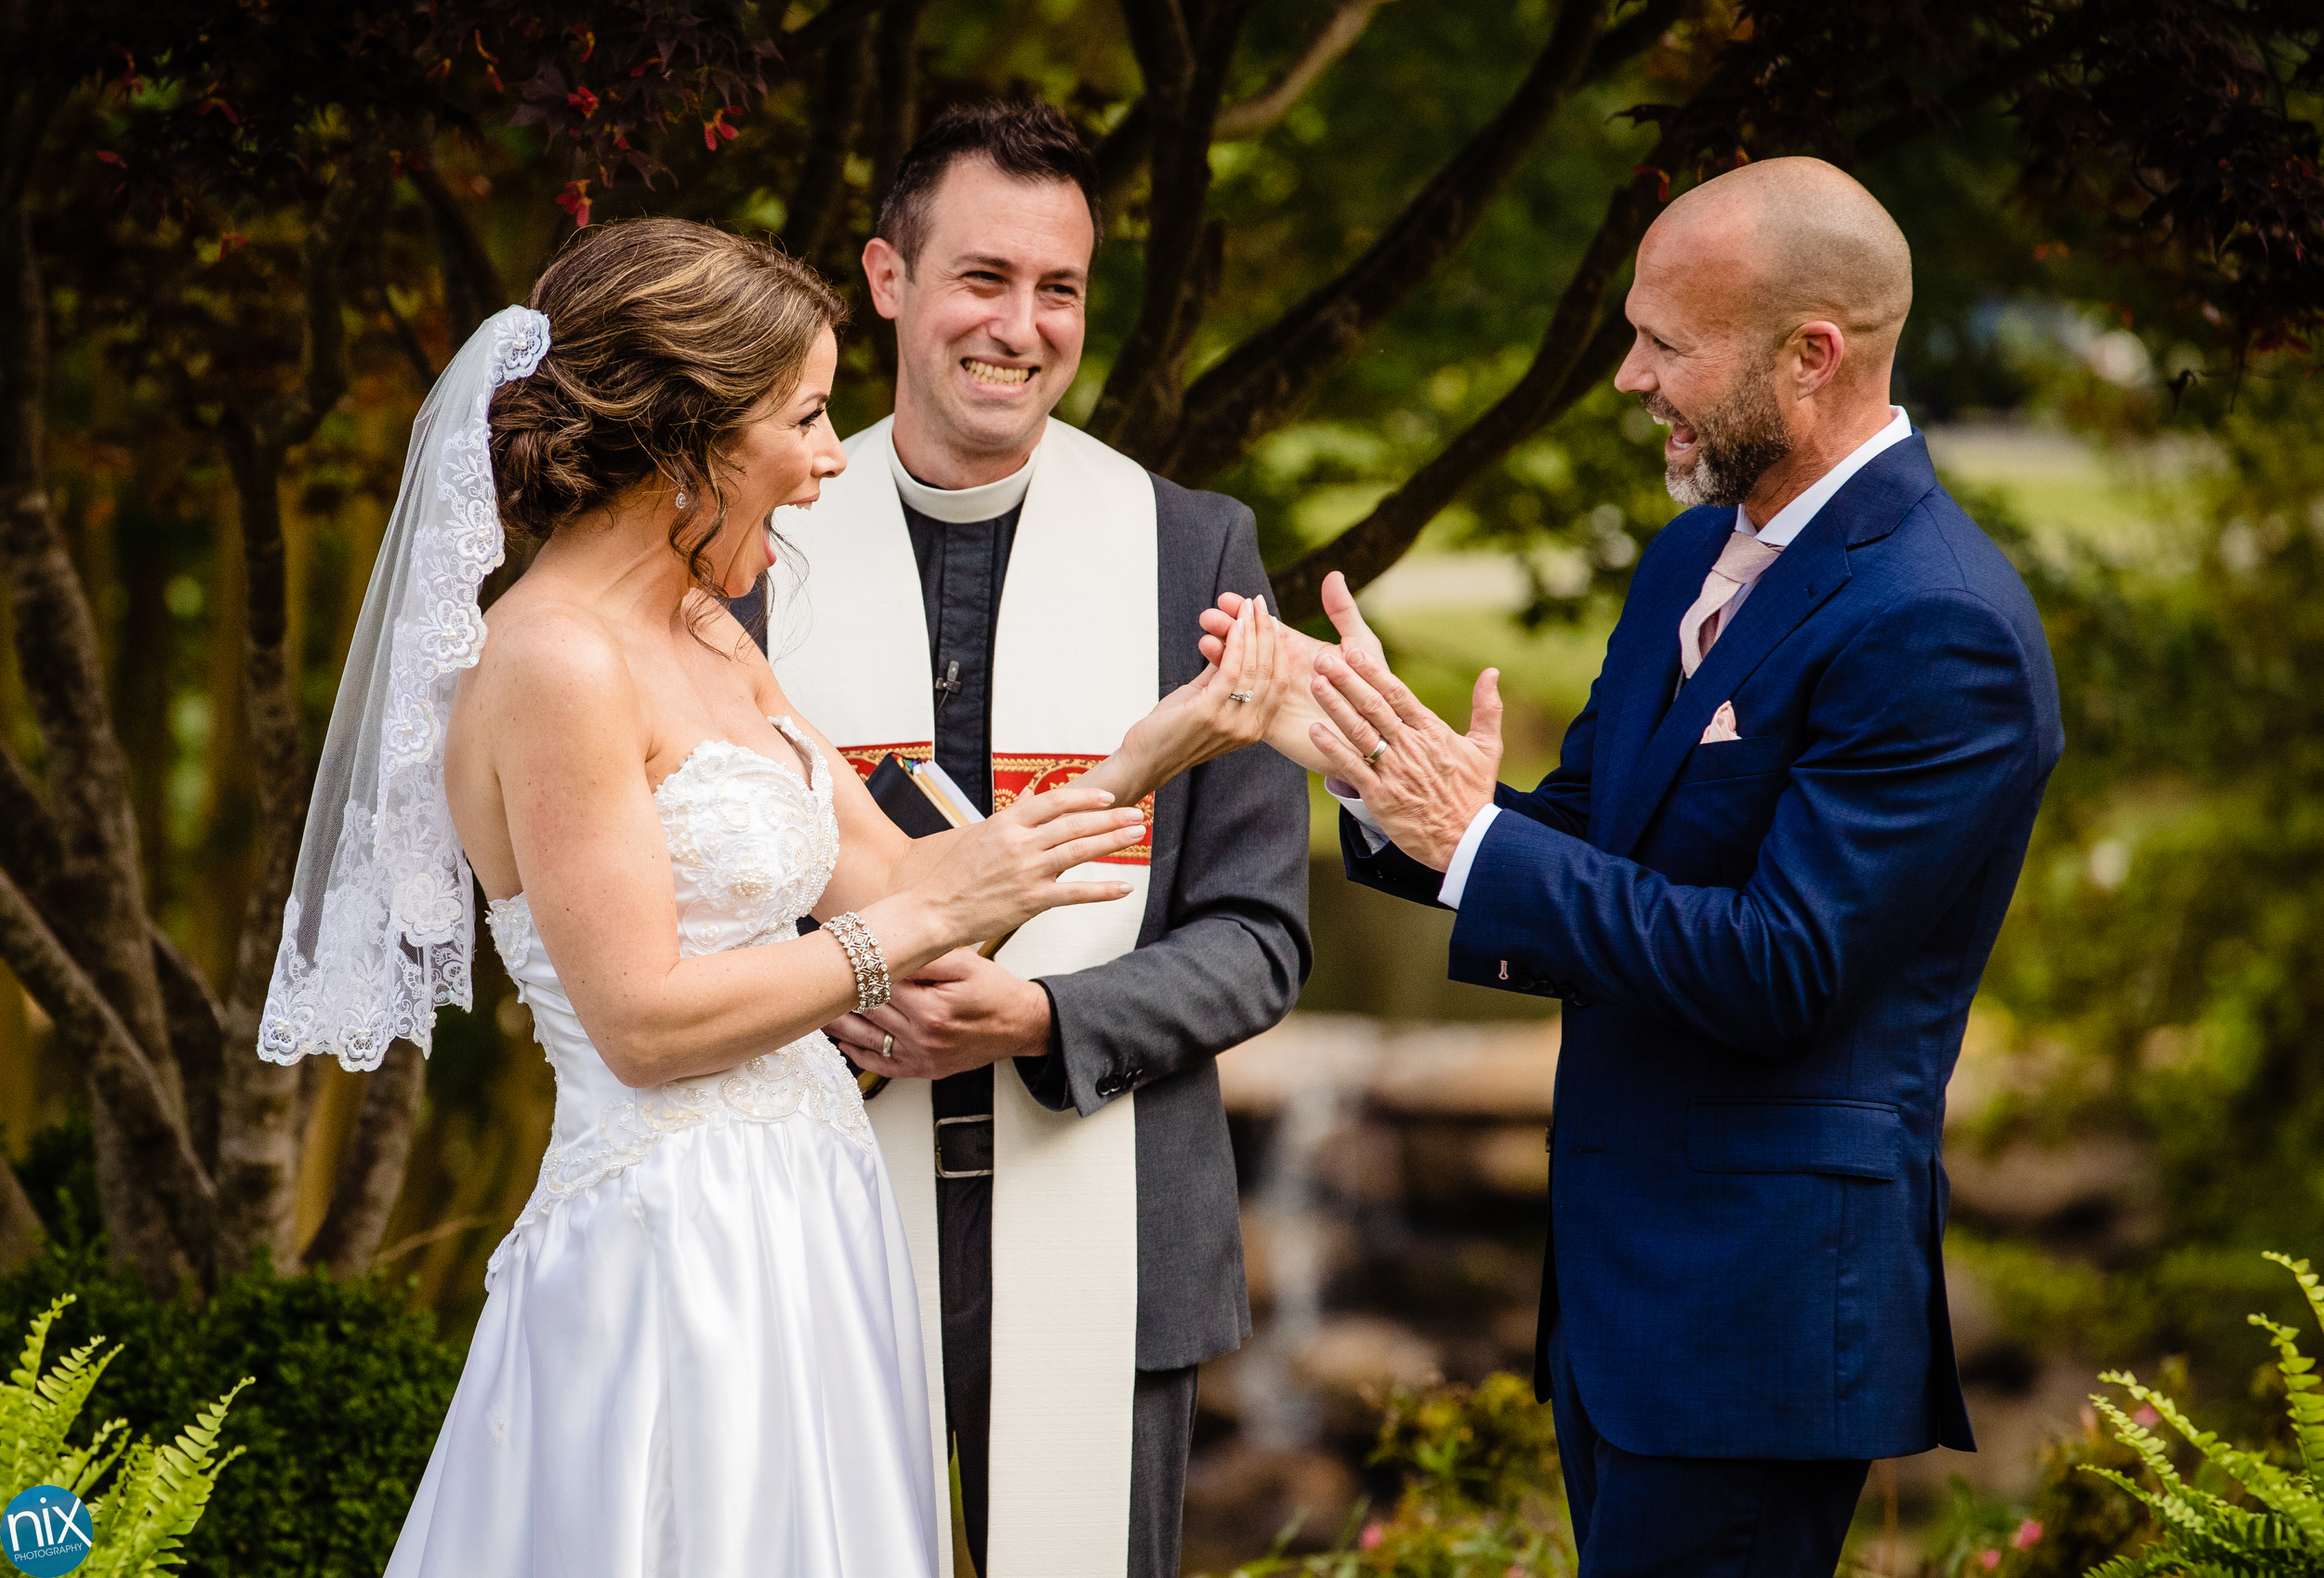 husband and wife are announced after wedding ceremony